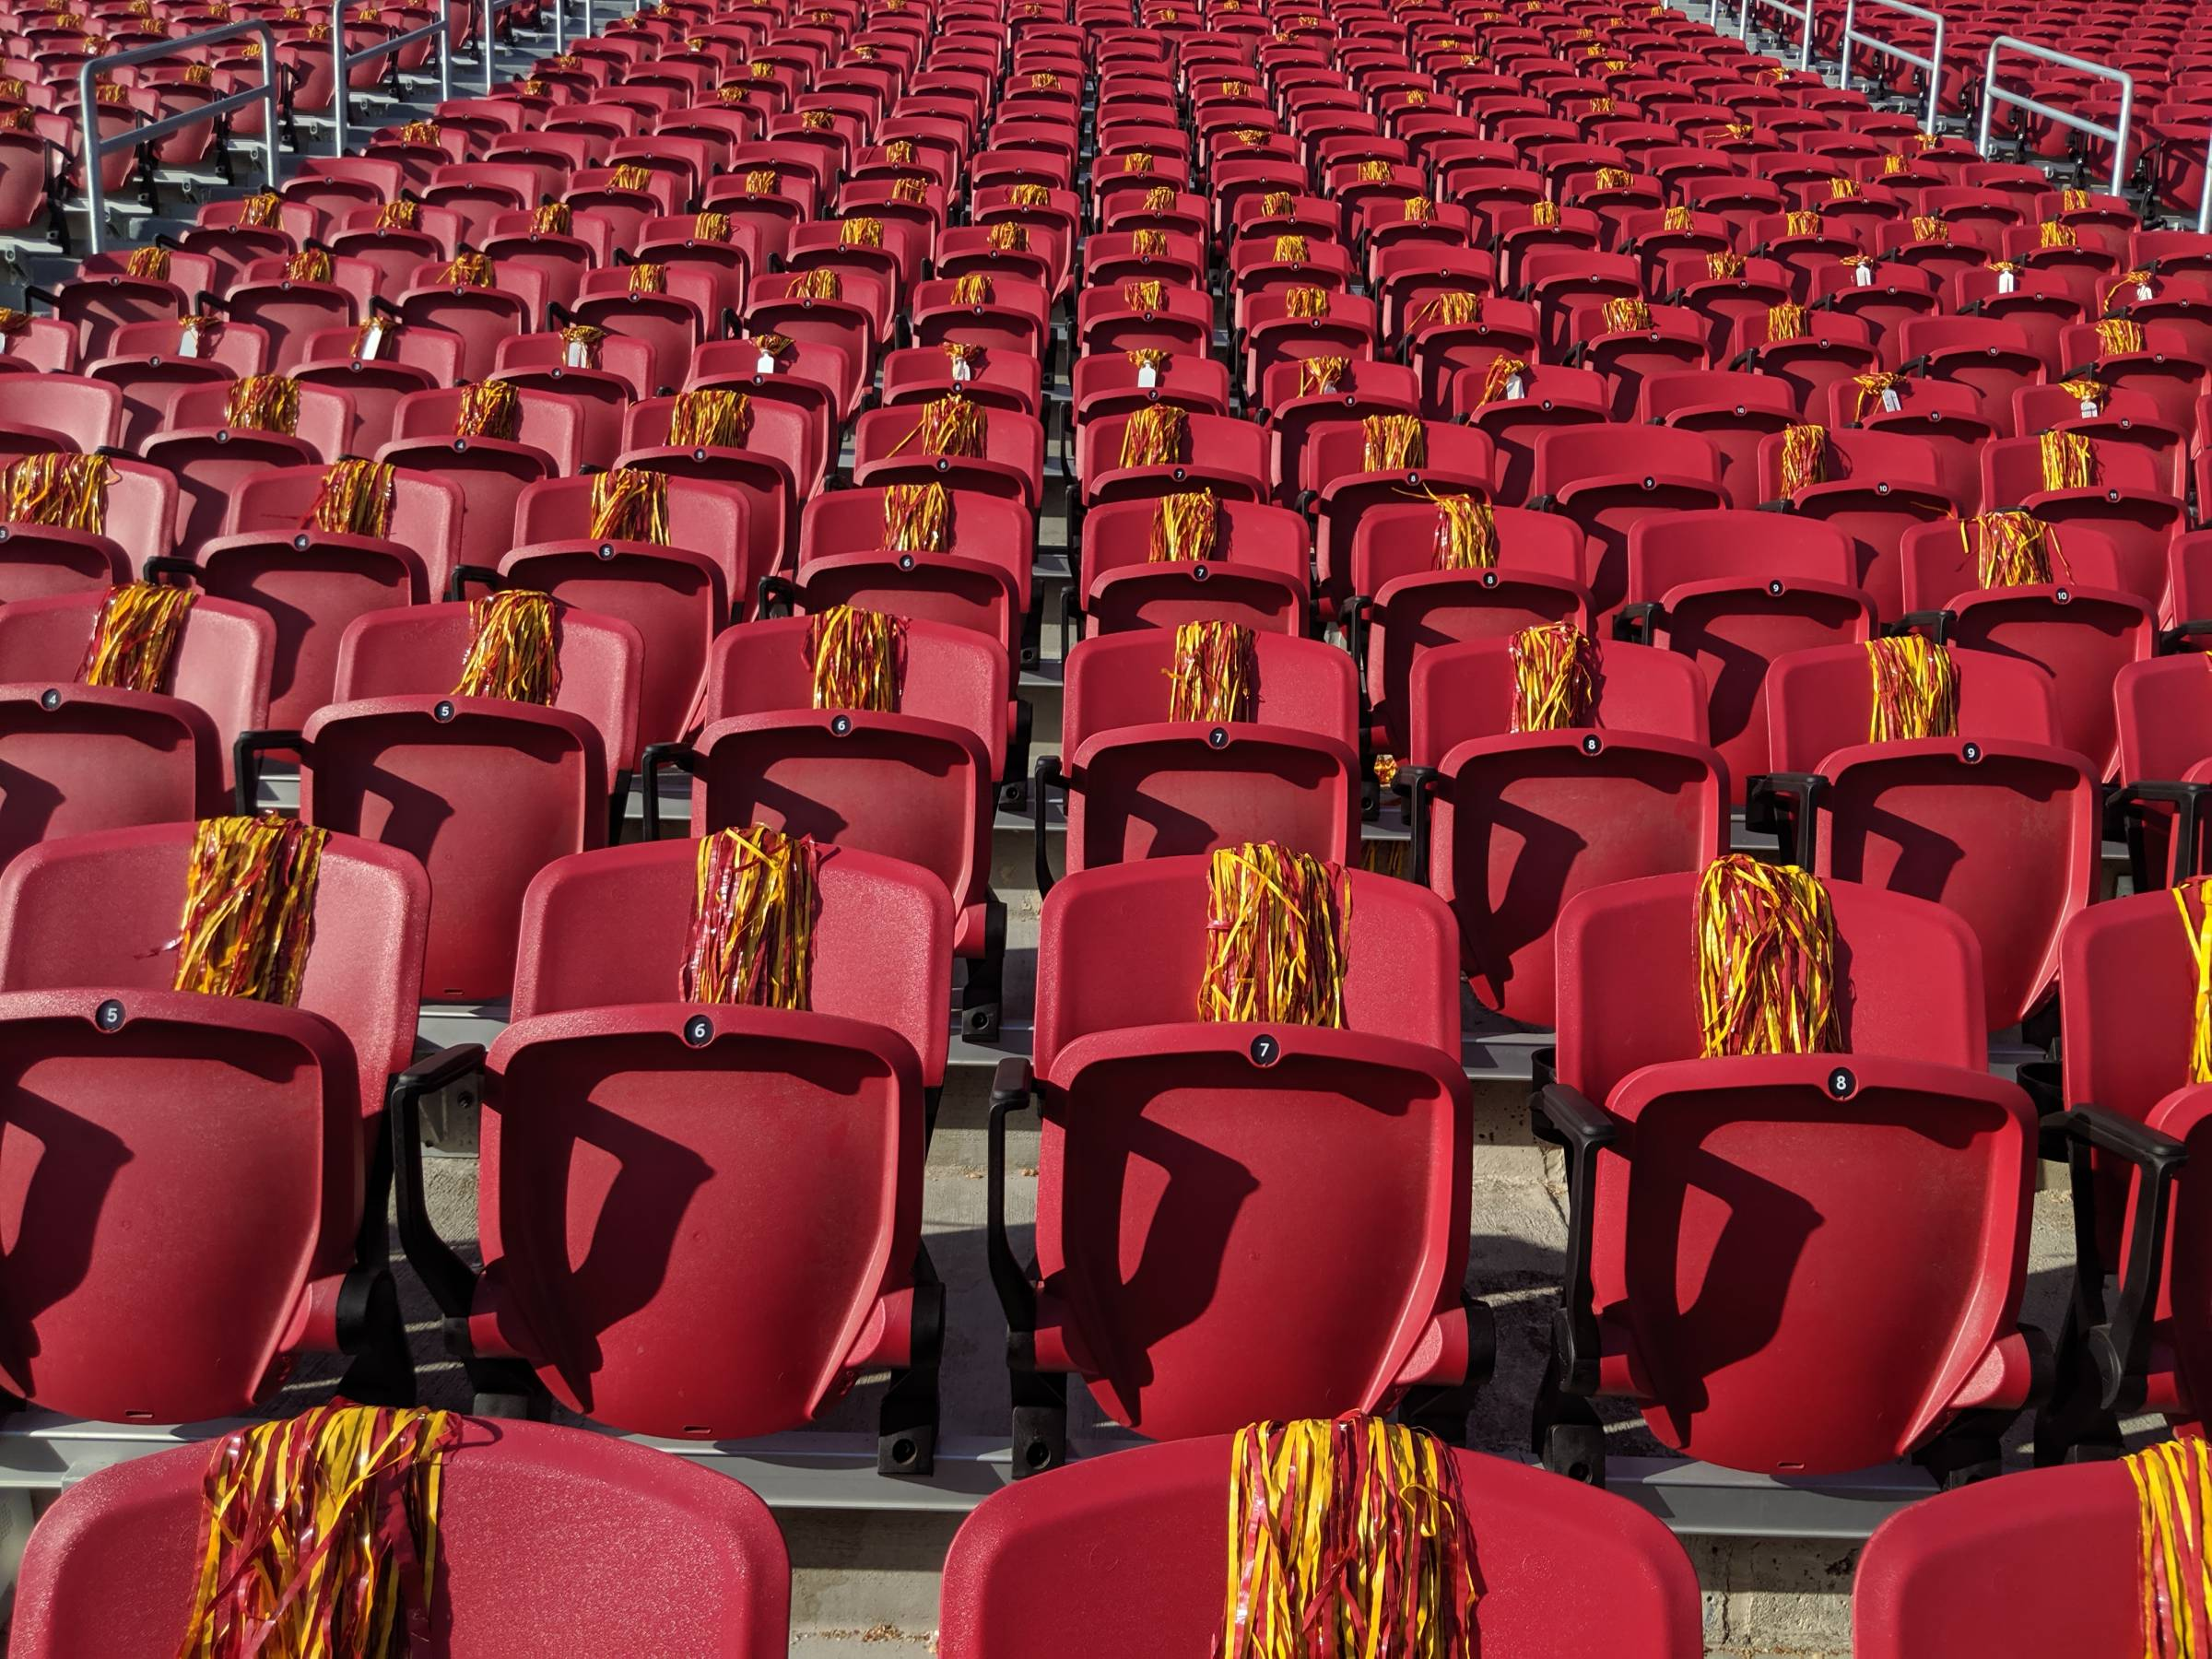 Student Sections for USC games